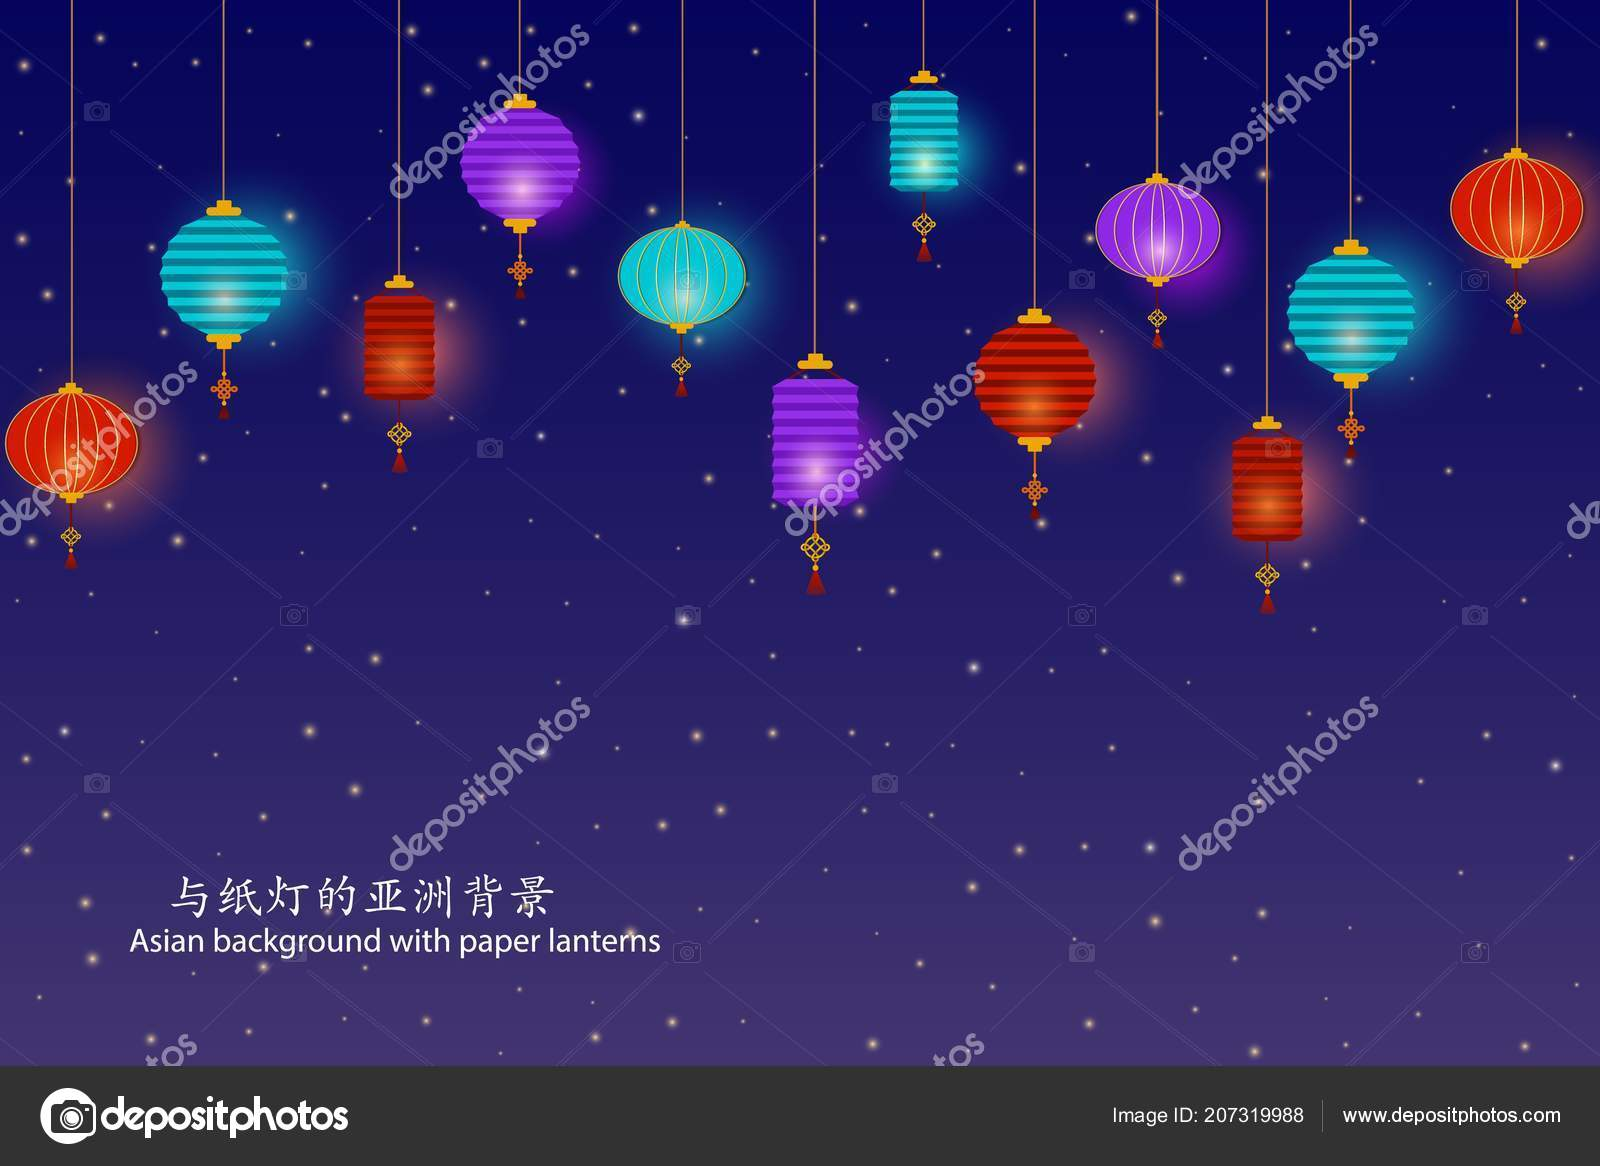 asian starry night background with paper lanterns template for mid